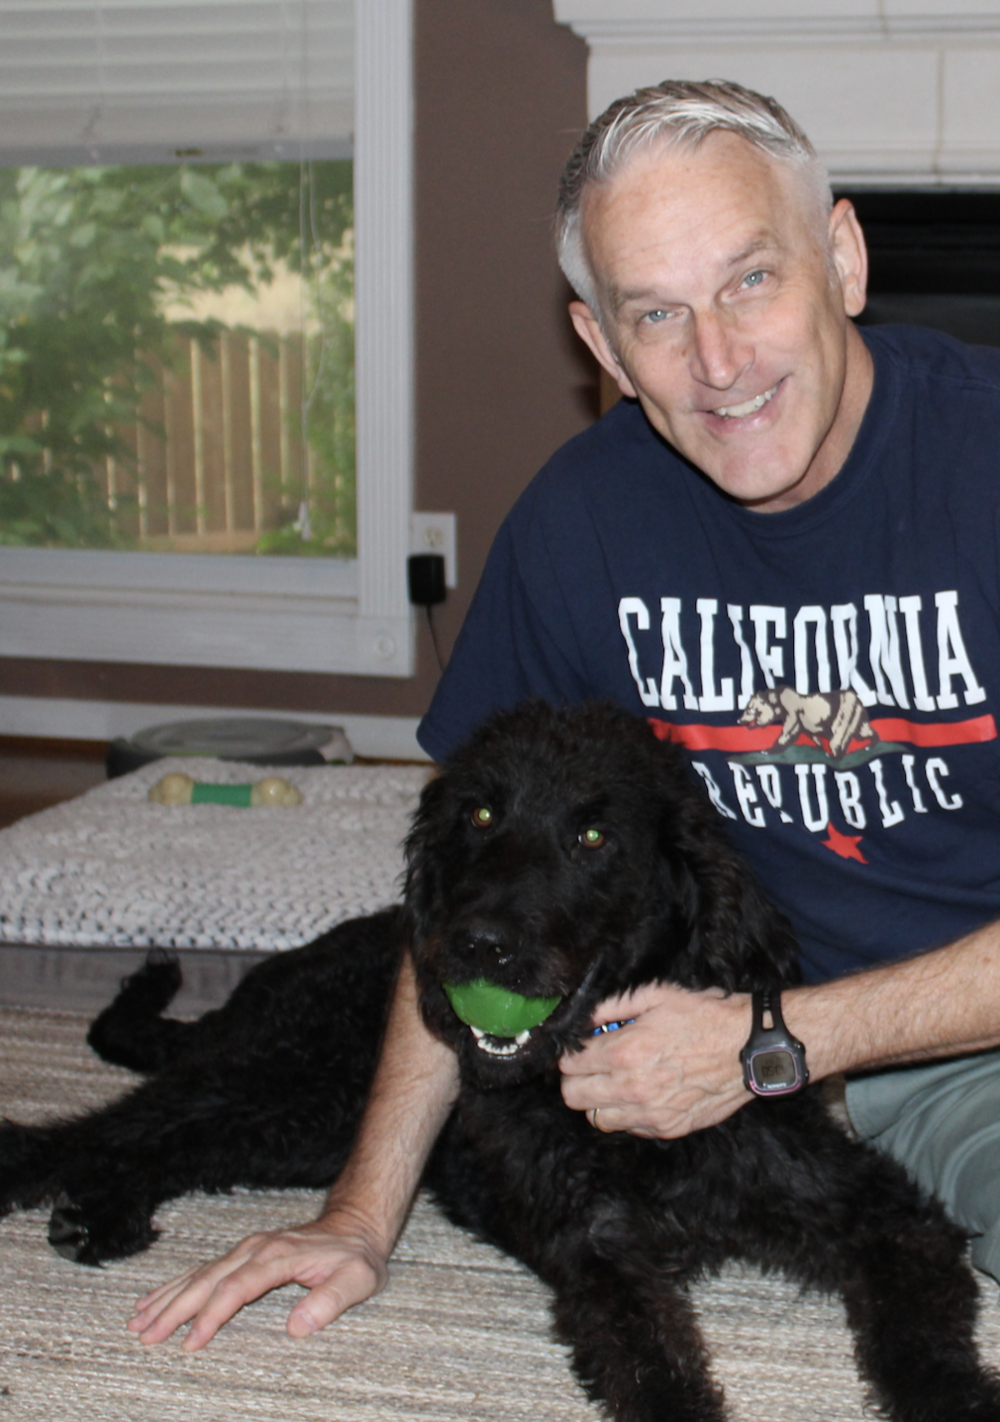 Toby - Our newest member of the trauma-informed learning team (in-training).Toby is a sweet labradoodle mix that was neglected by his previous owner. When I found him at a shelter he was all bones and seeking love. He loves to play with his toys as you can see in the picture. He also loves cuddles and fetching balls.